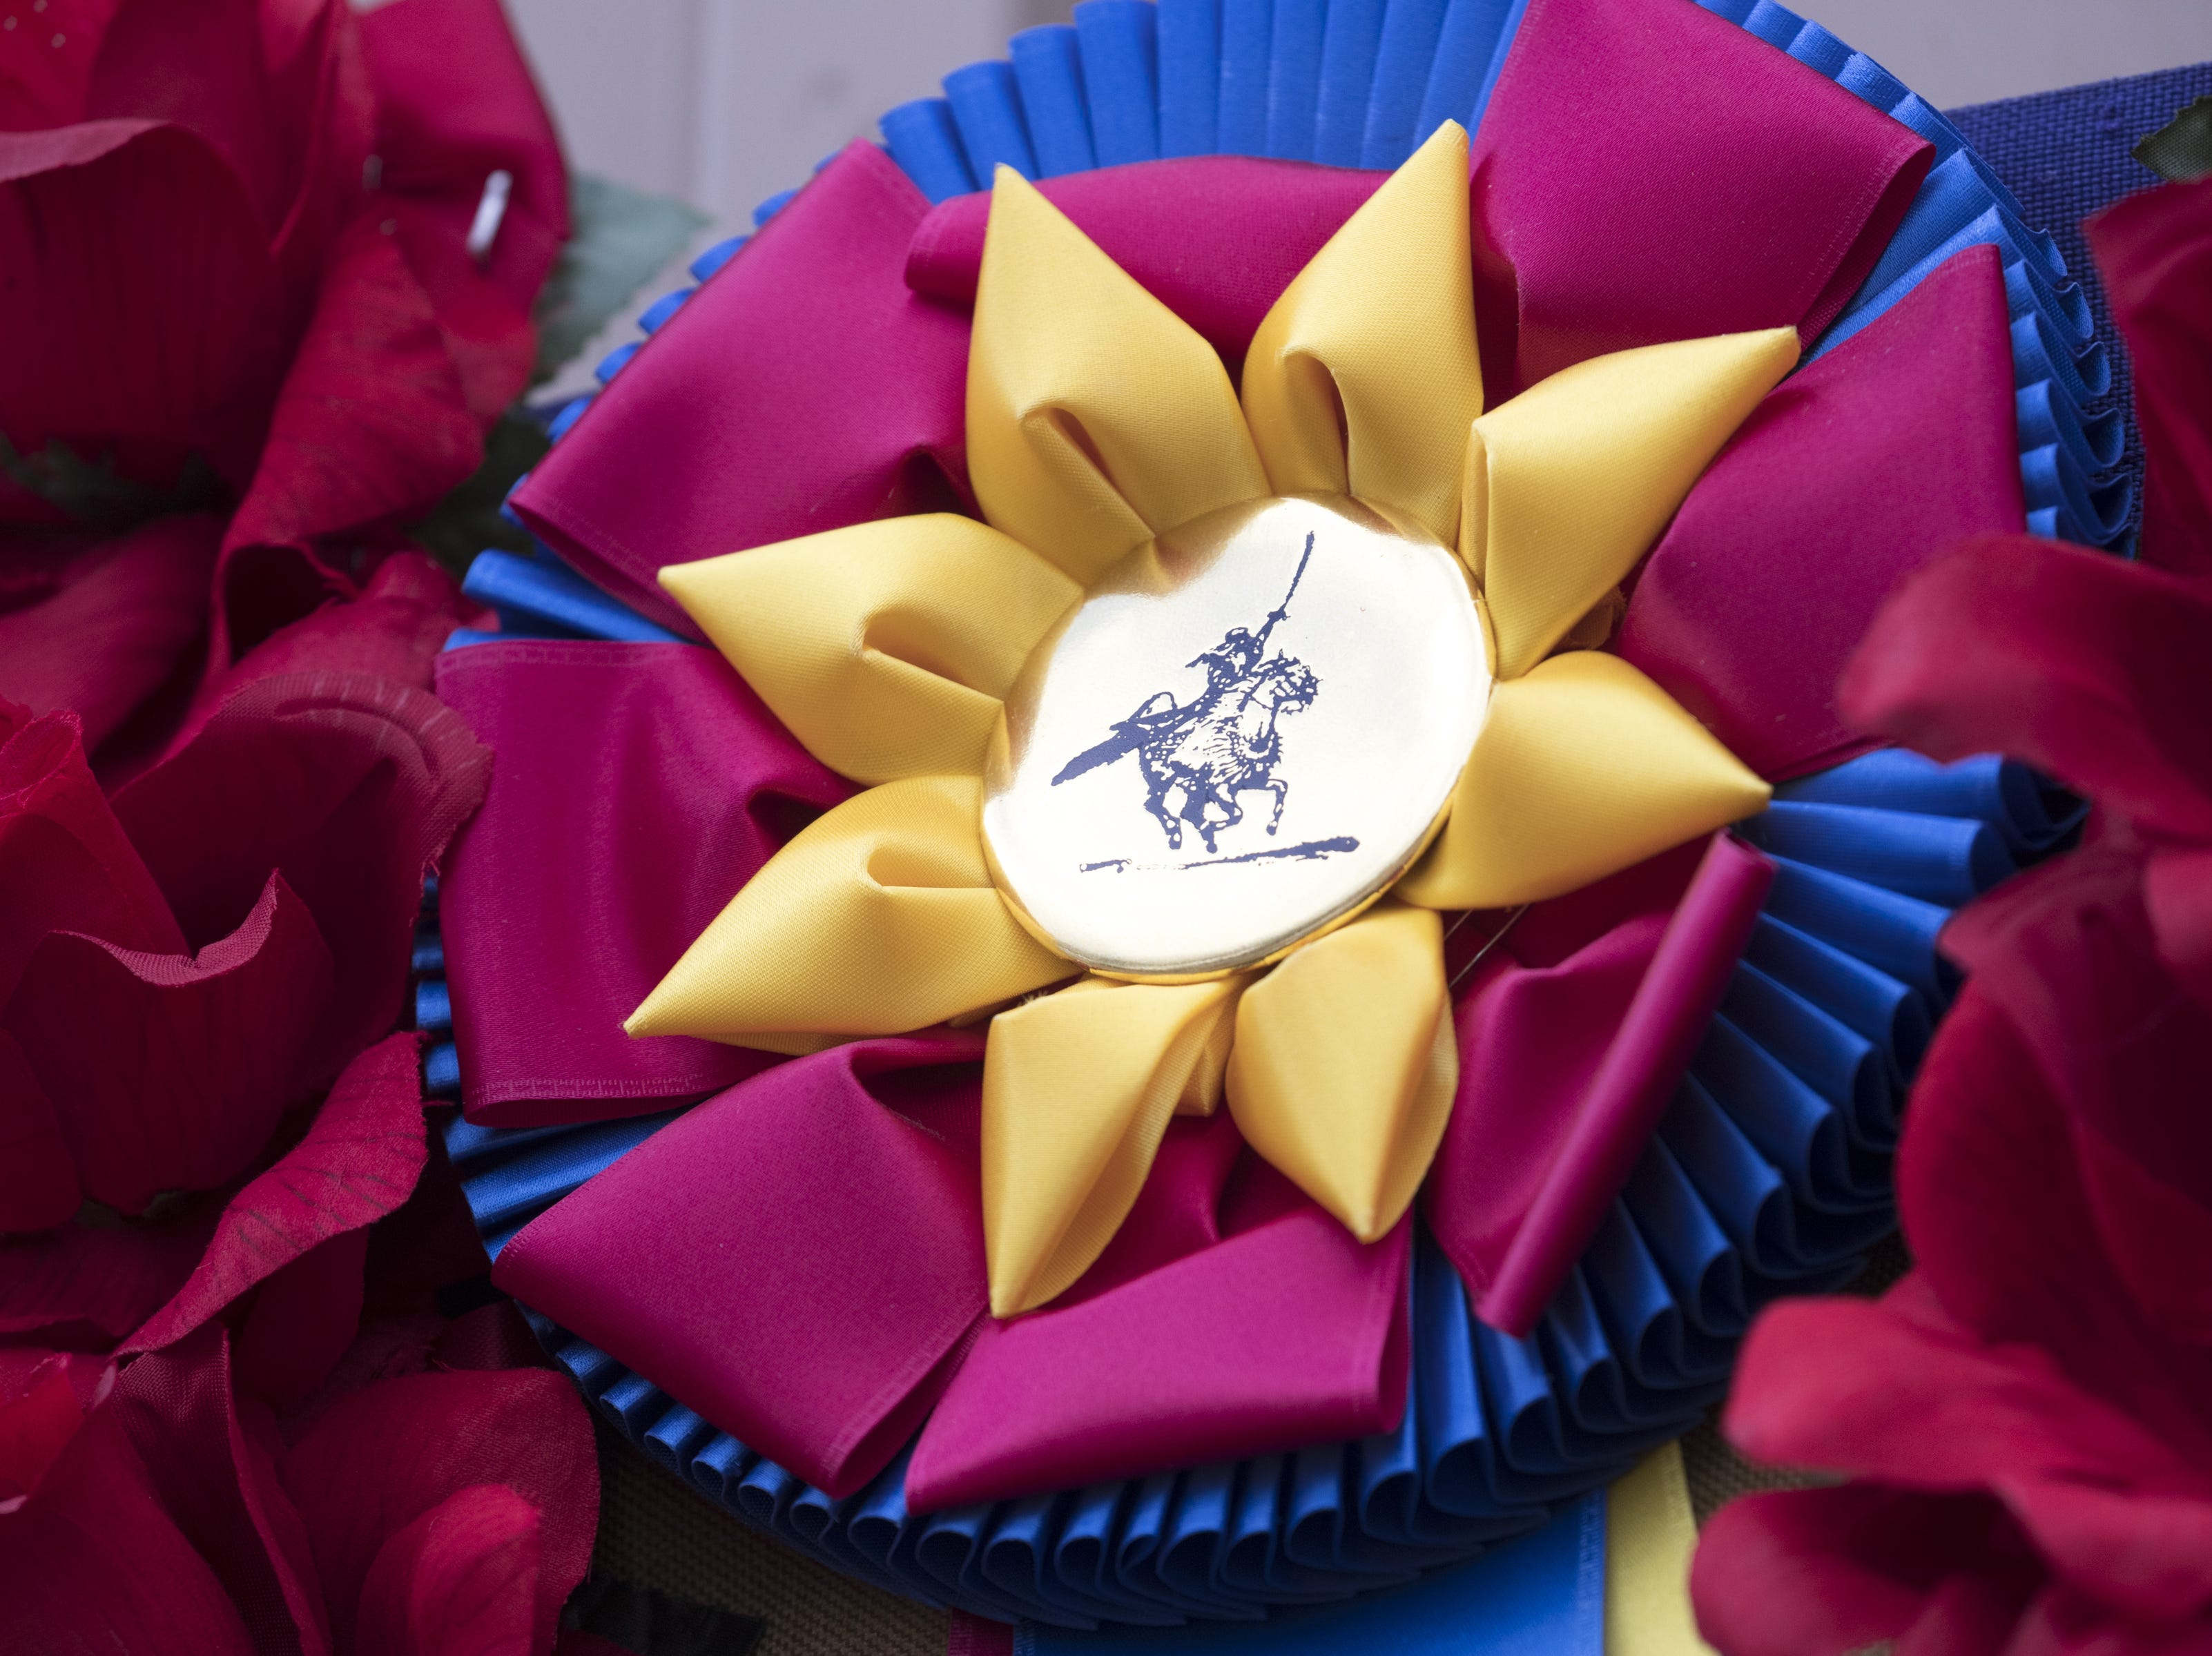 A ribbon on display at the Cedar Ridge Arabians Inc. stable on Feb. 18, 2019, during the 64th Annual Scottsdale Arabian Horse Show at West World.